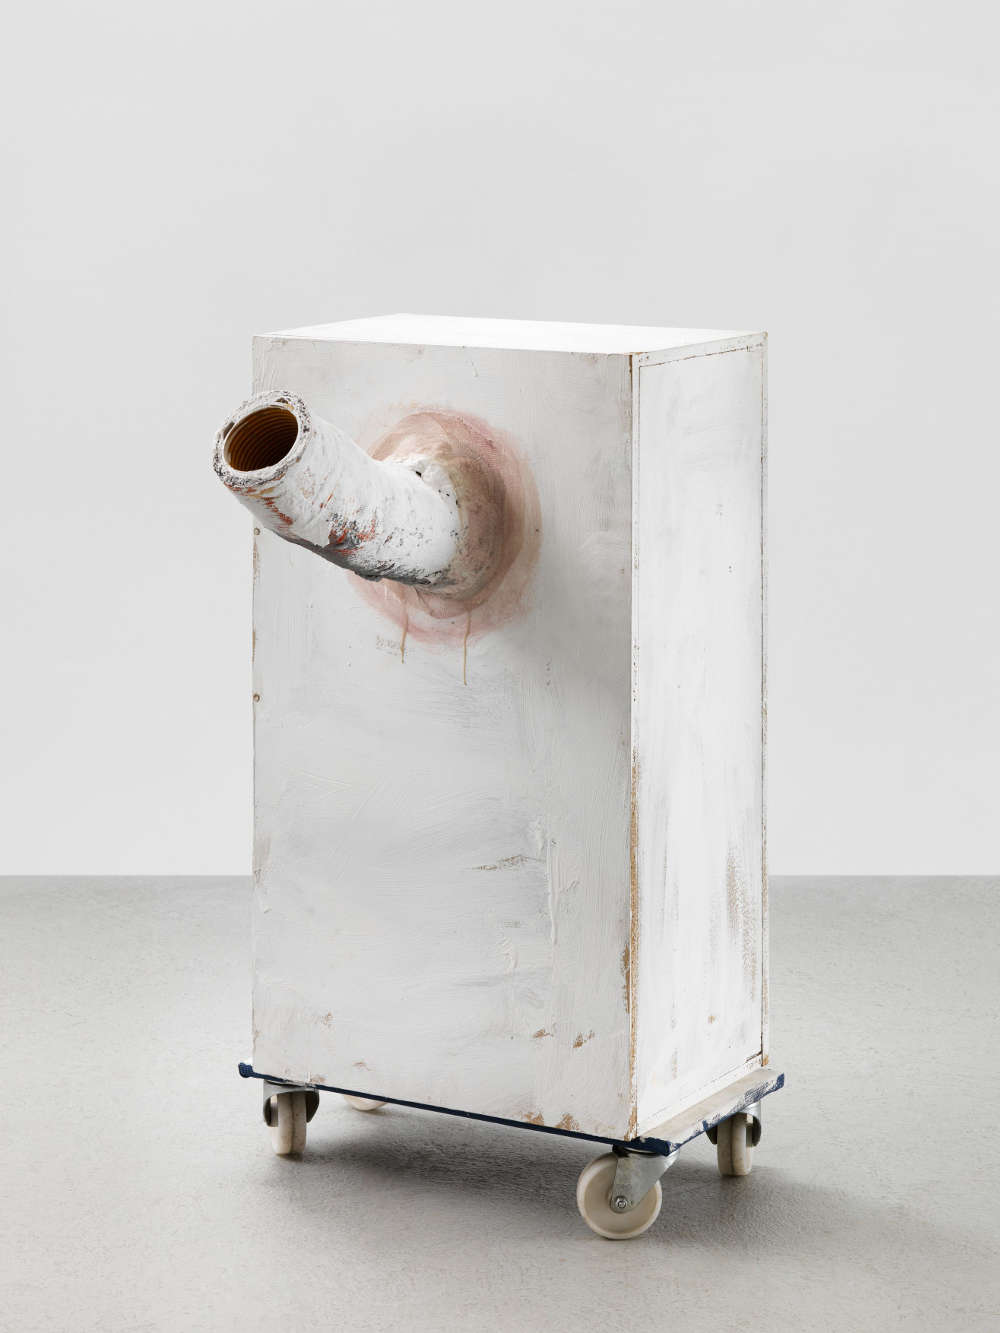 Franz West, Allzweckkasten (Multi-purpose box), 1998. Wood, four rollers, gauze, plaster, paint and polyester 110 x 79 x 54 cm / 43 1/4 x 31 1/8 x 21 1/4 in © Archive Franz West, © 2019 Estate of Franz West. Courtesy the Estate and Hauser & Wirth